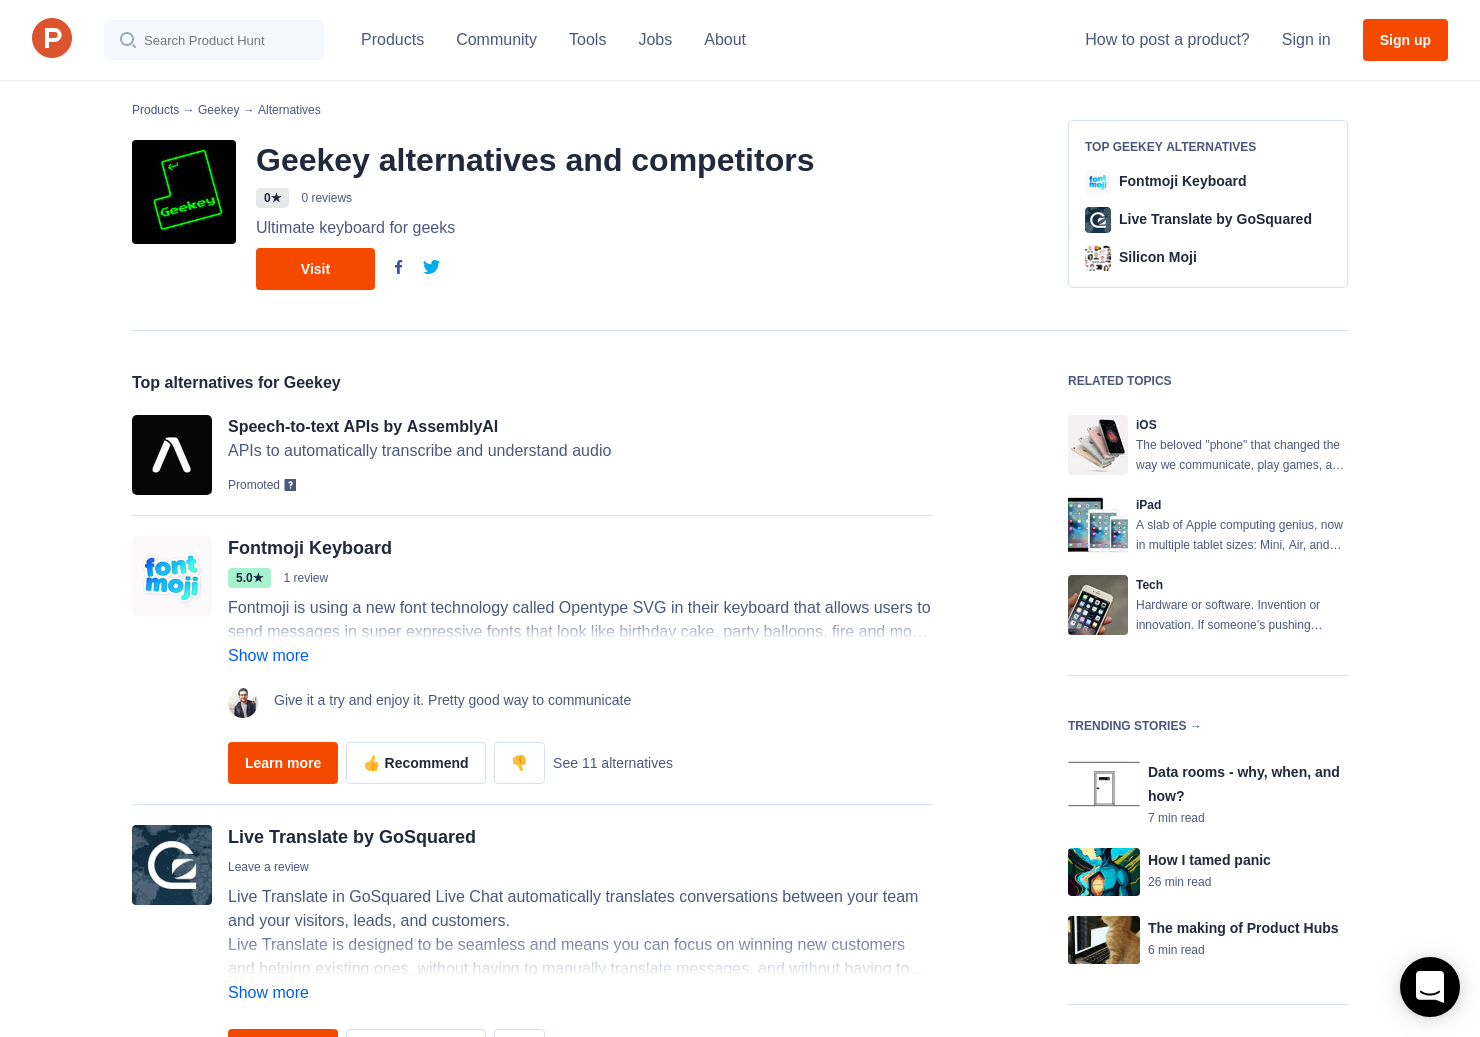 5 Alternatives to Geekey for iPhone, iPad | Product Hunt